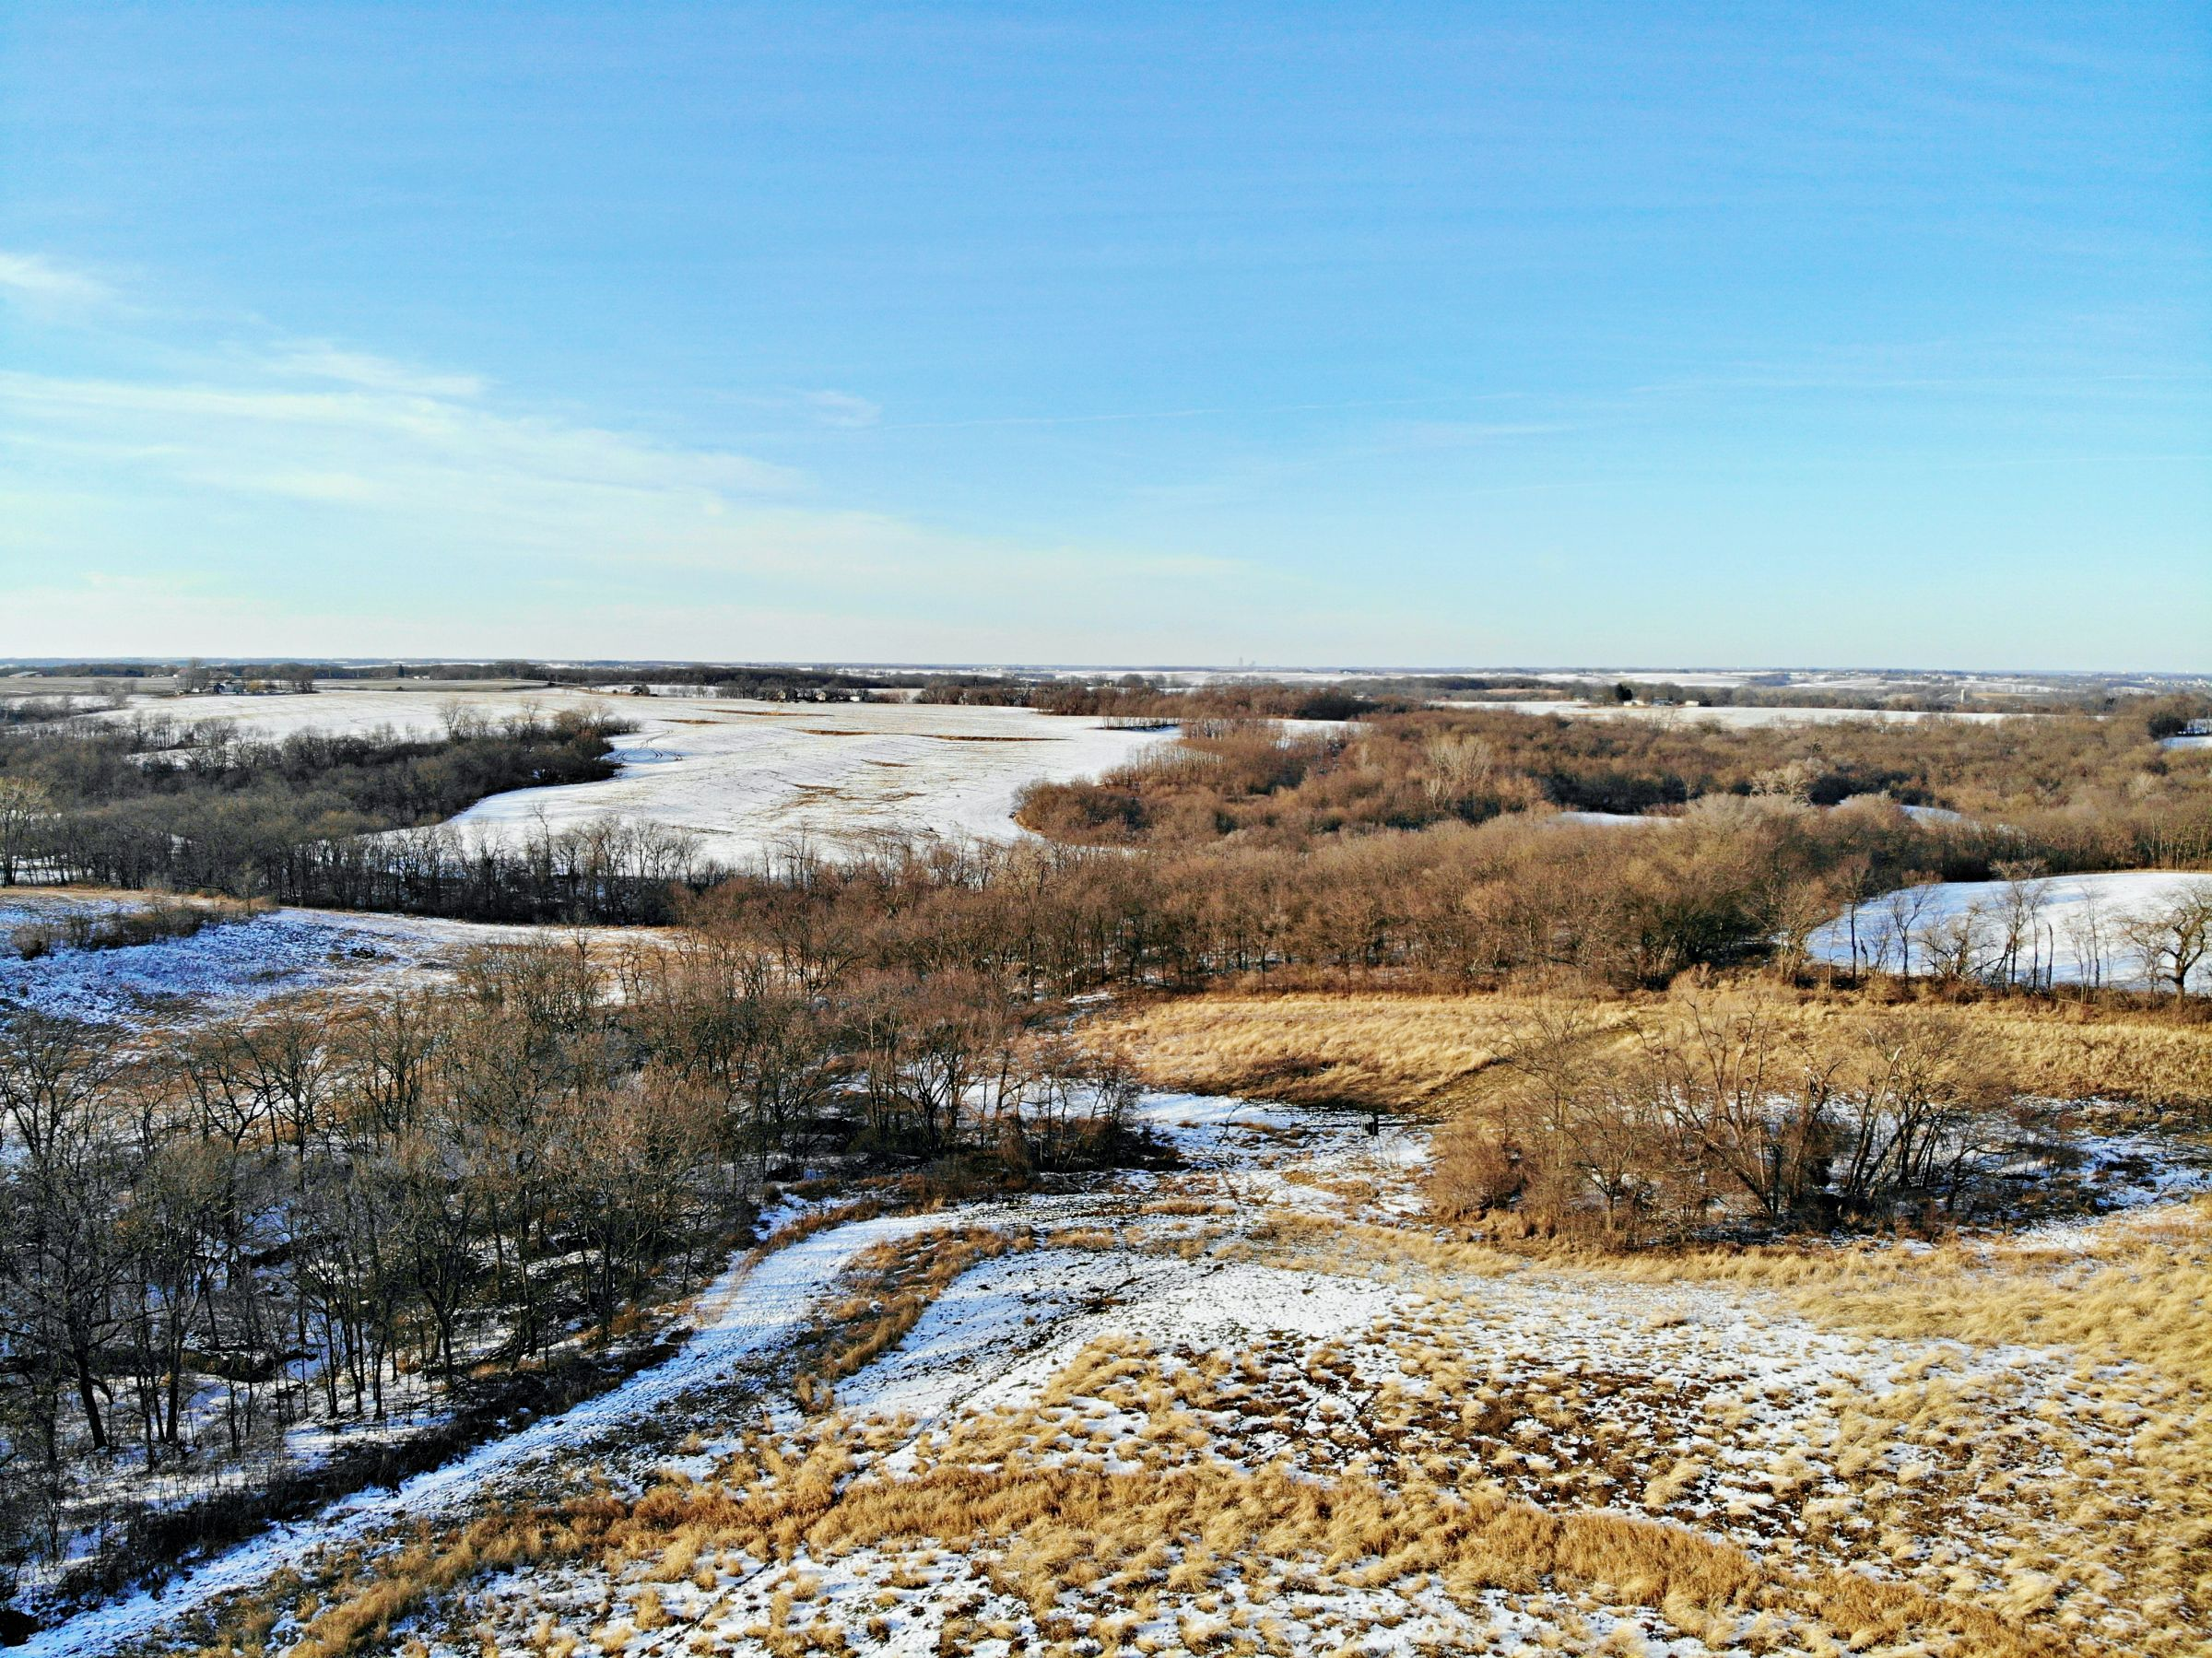 land-warren-county-iowa-21-acres-listing-number-15324-4-2021-01-18-024942.jpg